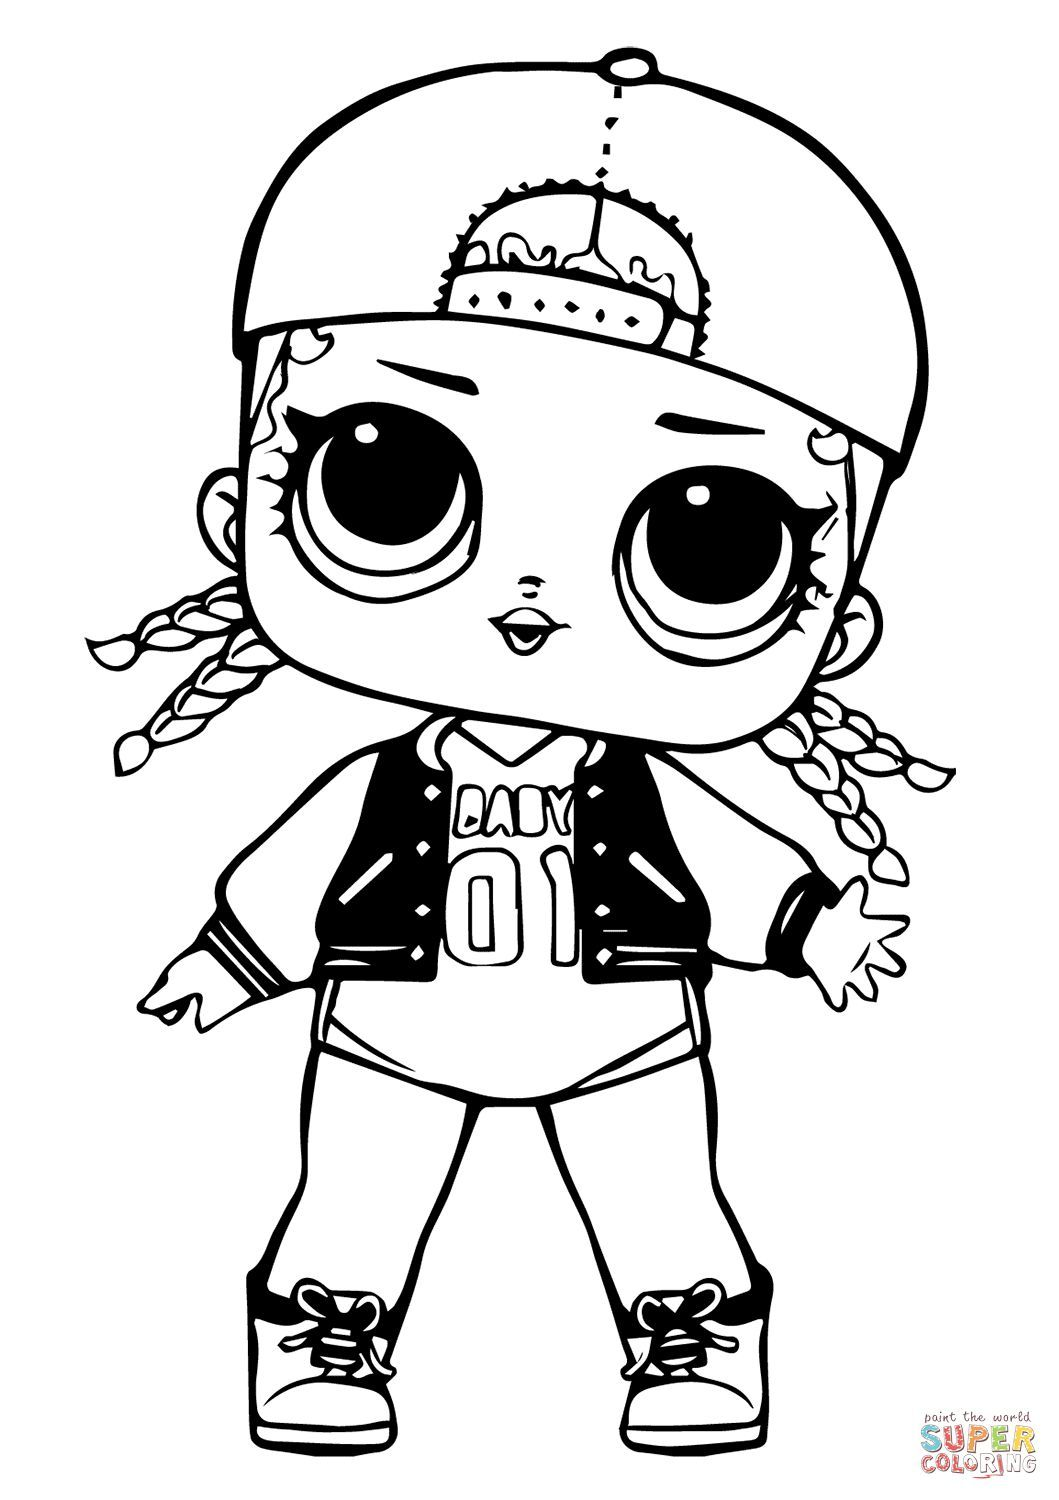 Lol Doll Coloring Pages Games In 2020 Cool Coloring Pages Lol Dolls Coloring Books